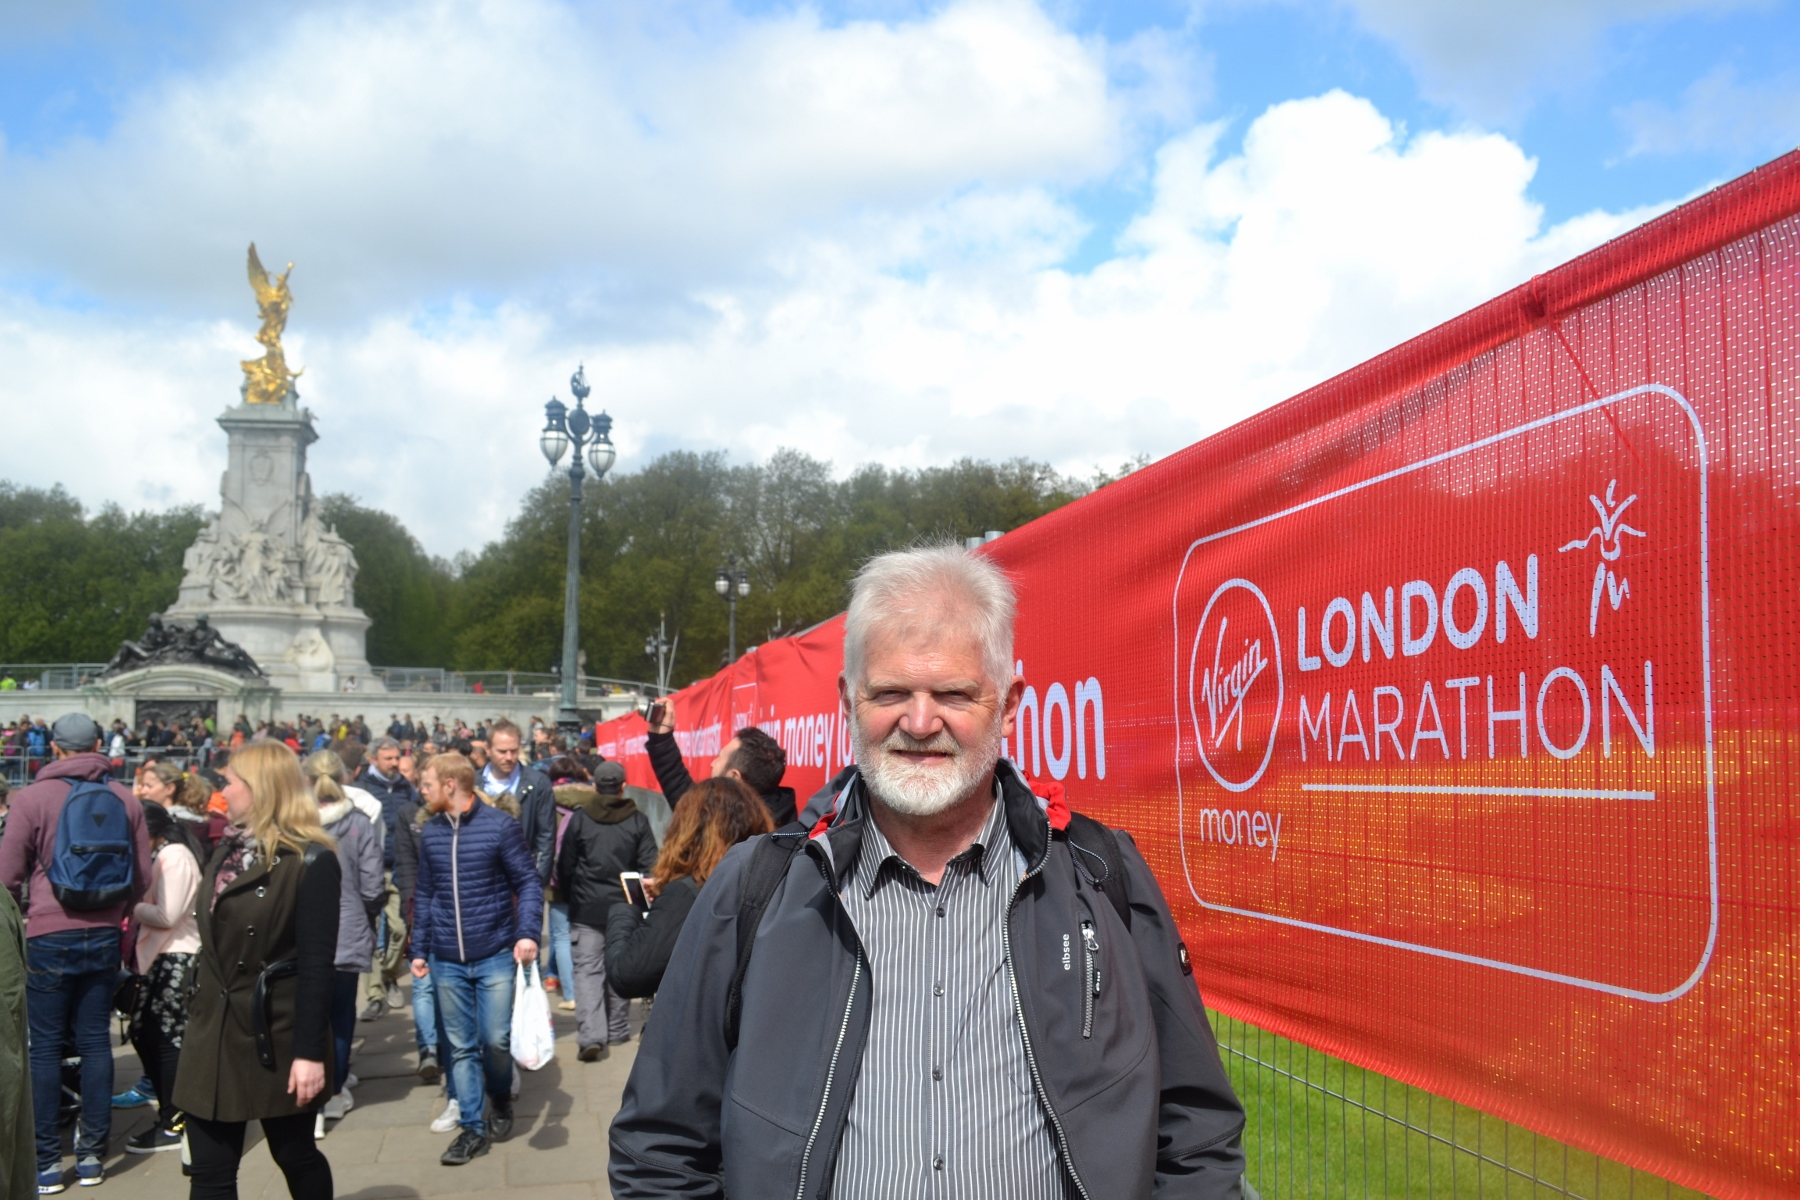 Greetings from the preparations for the London Marathon